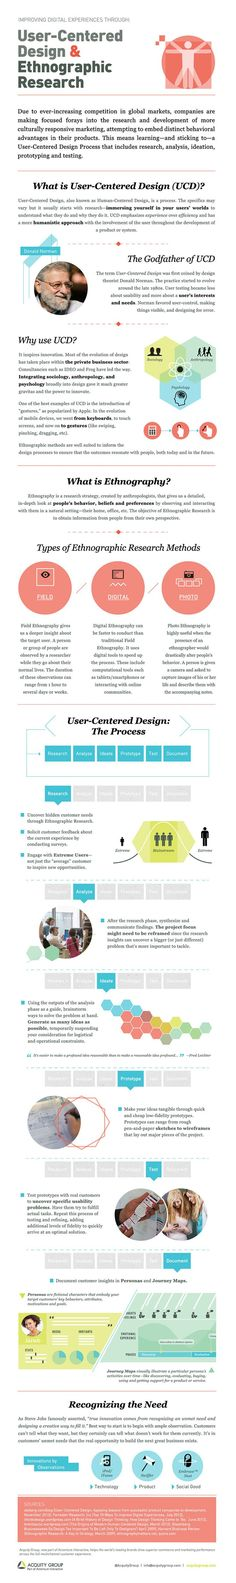 User-Centered Design and Ethnographic Research #infographic #Marketing #ContentMarketing. If you like UX, design, or design thinking, check out theuxblog.com